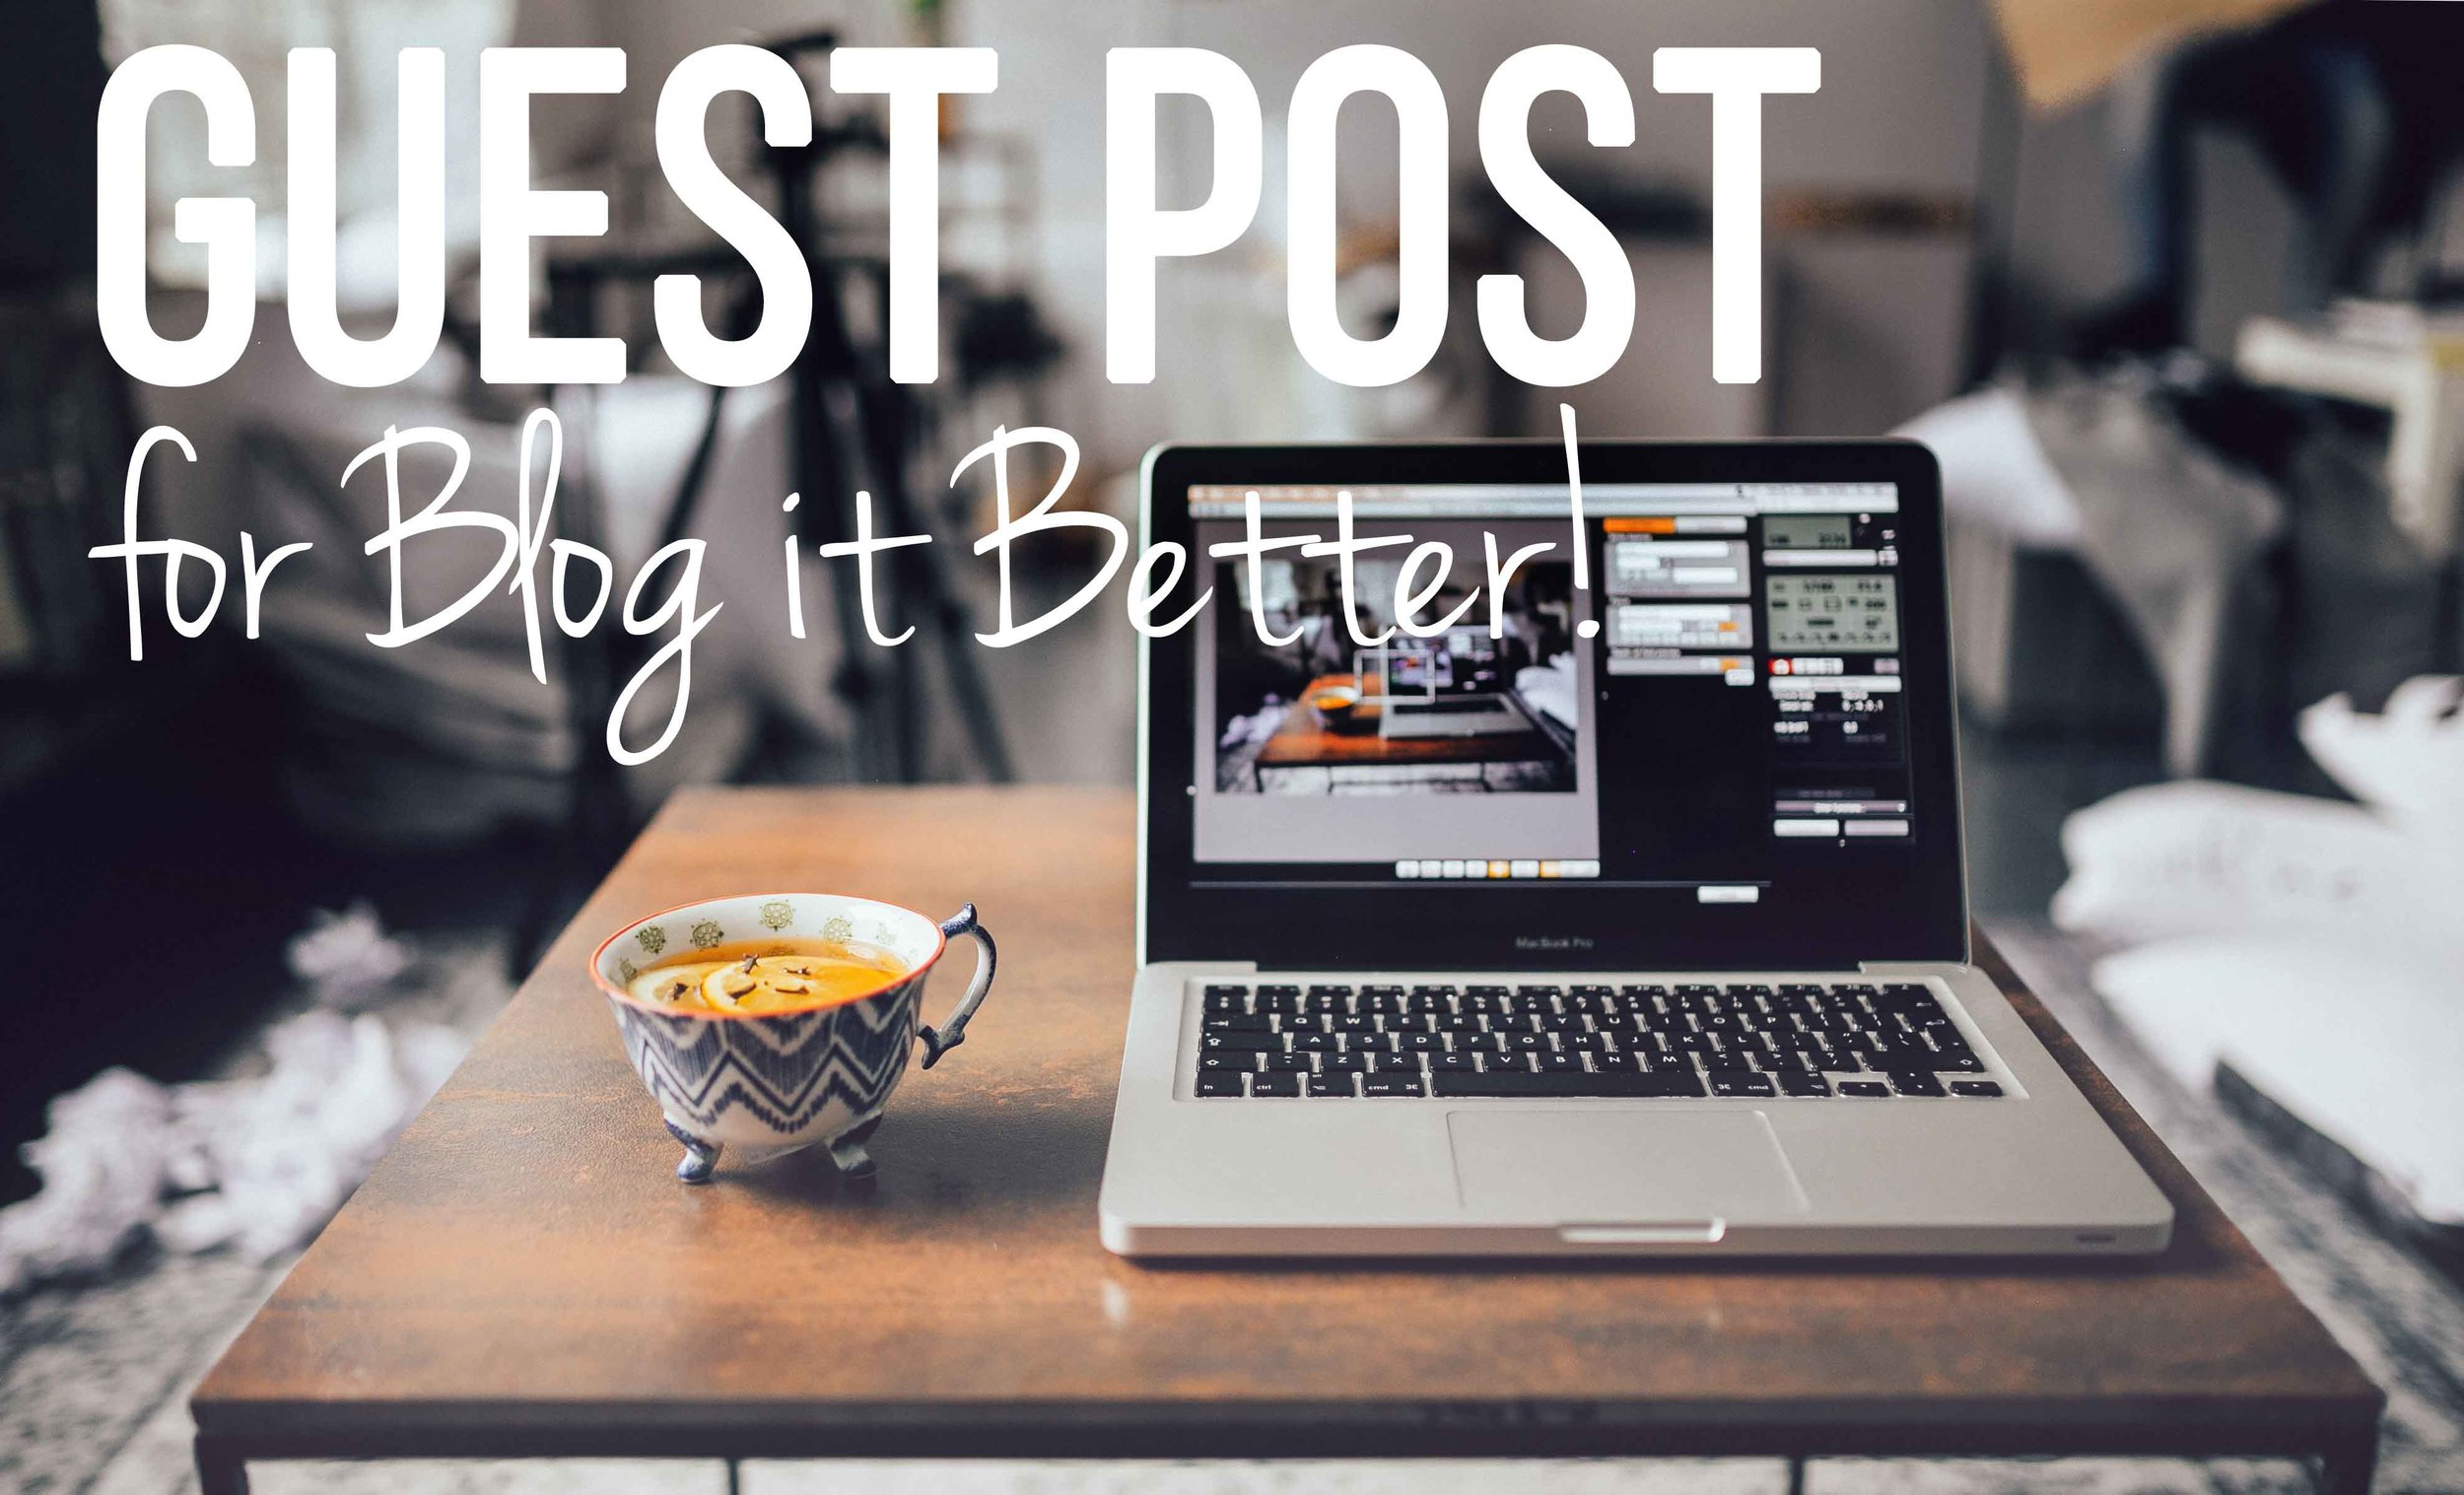 Guest Post for Blog it Better